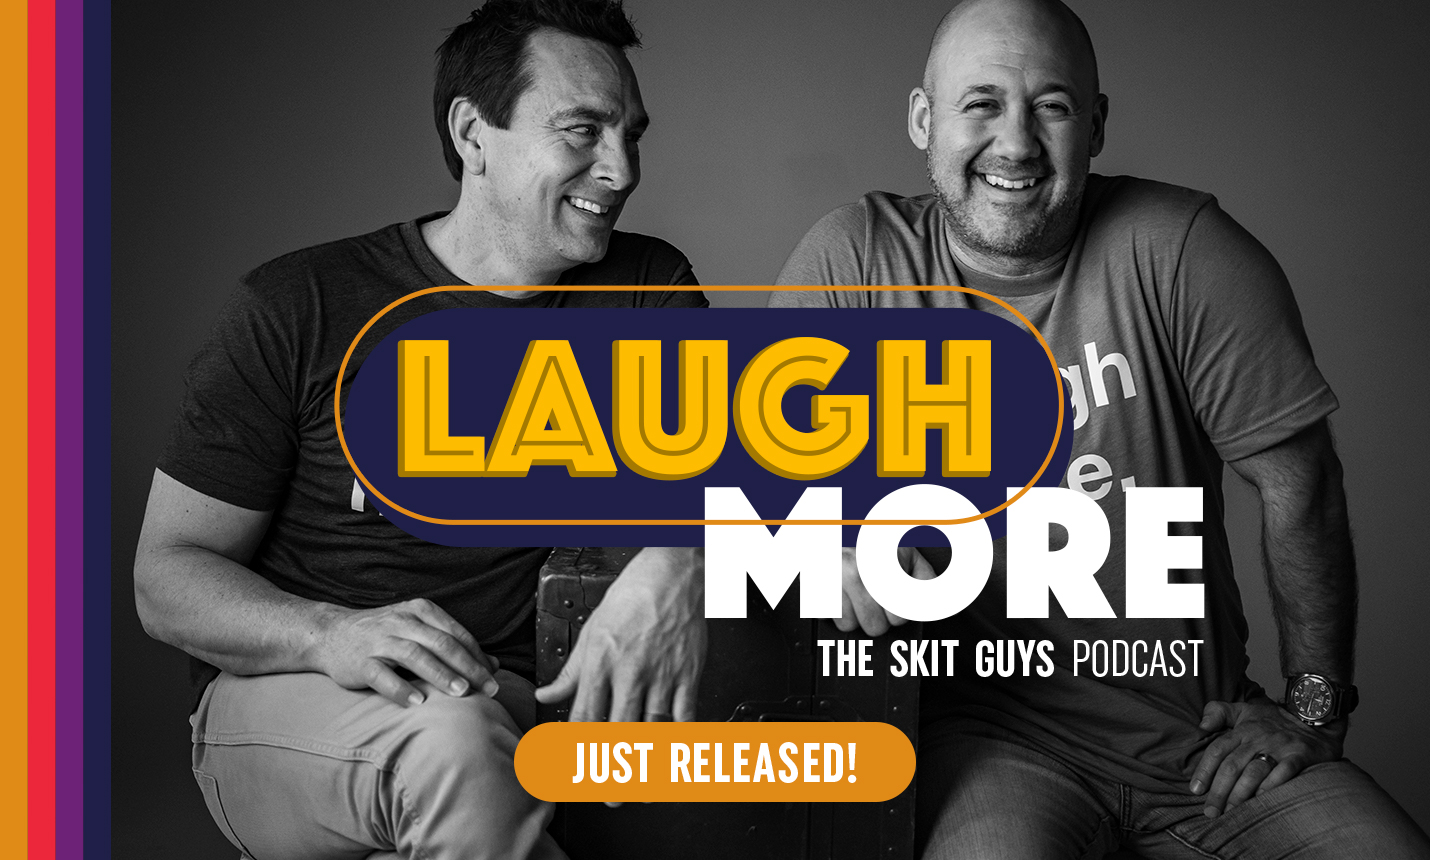 Laugh More the Skit Guys Podcast - Just Released